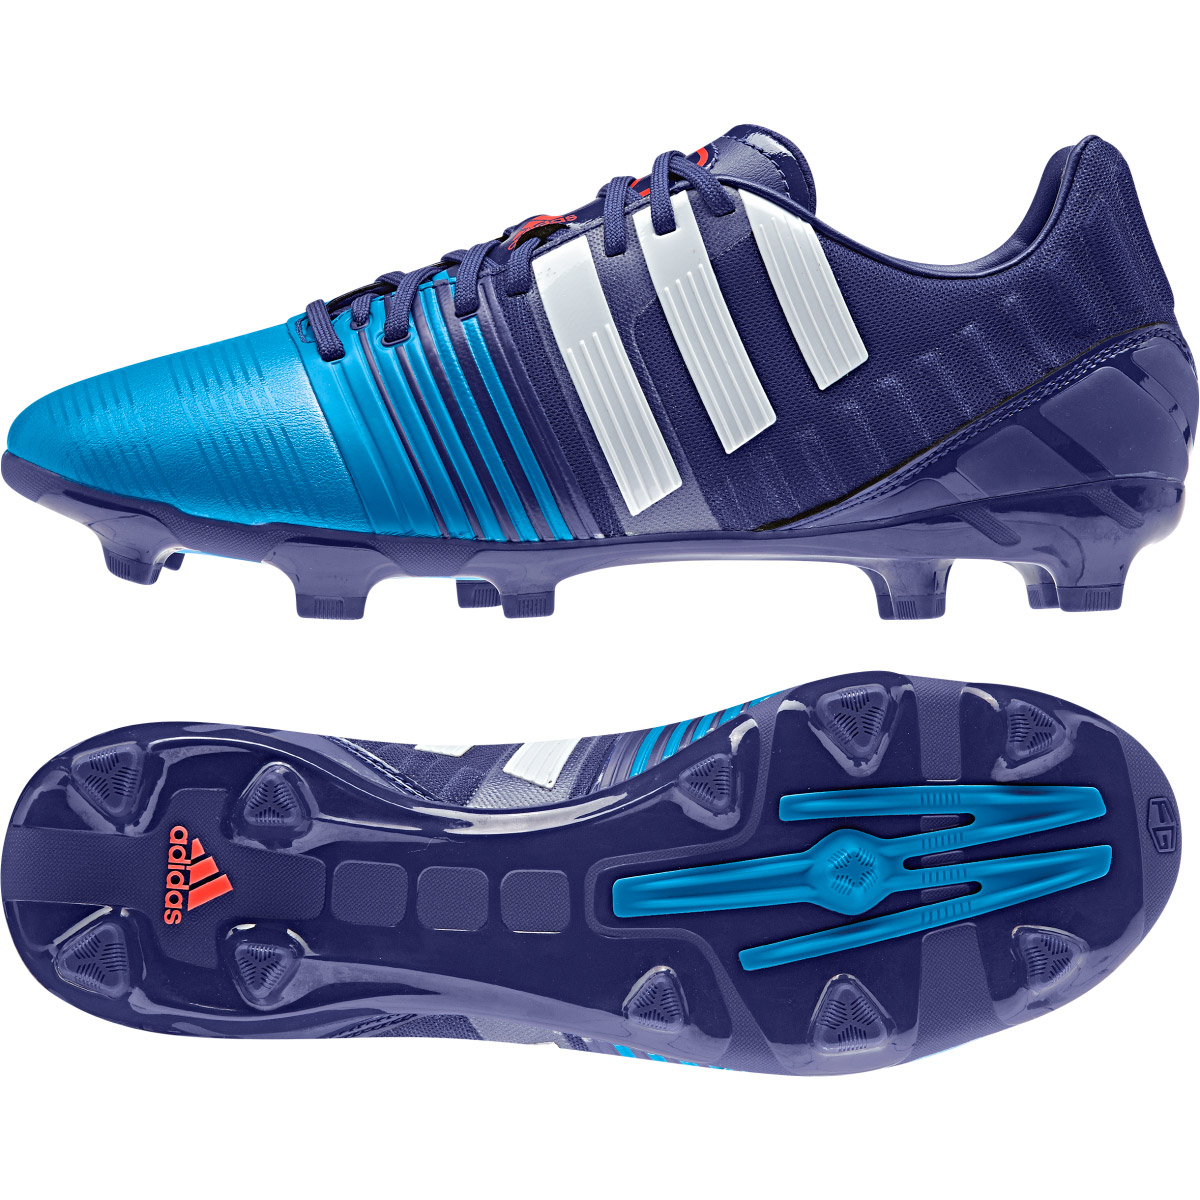 Nitrocharge 2.0 FG Purple